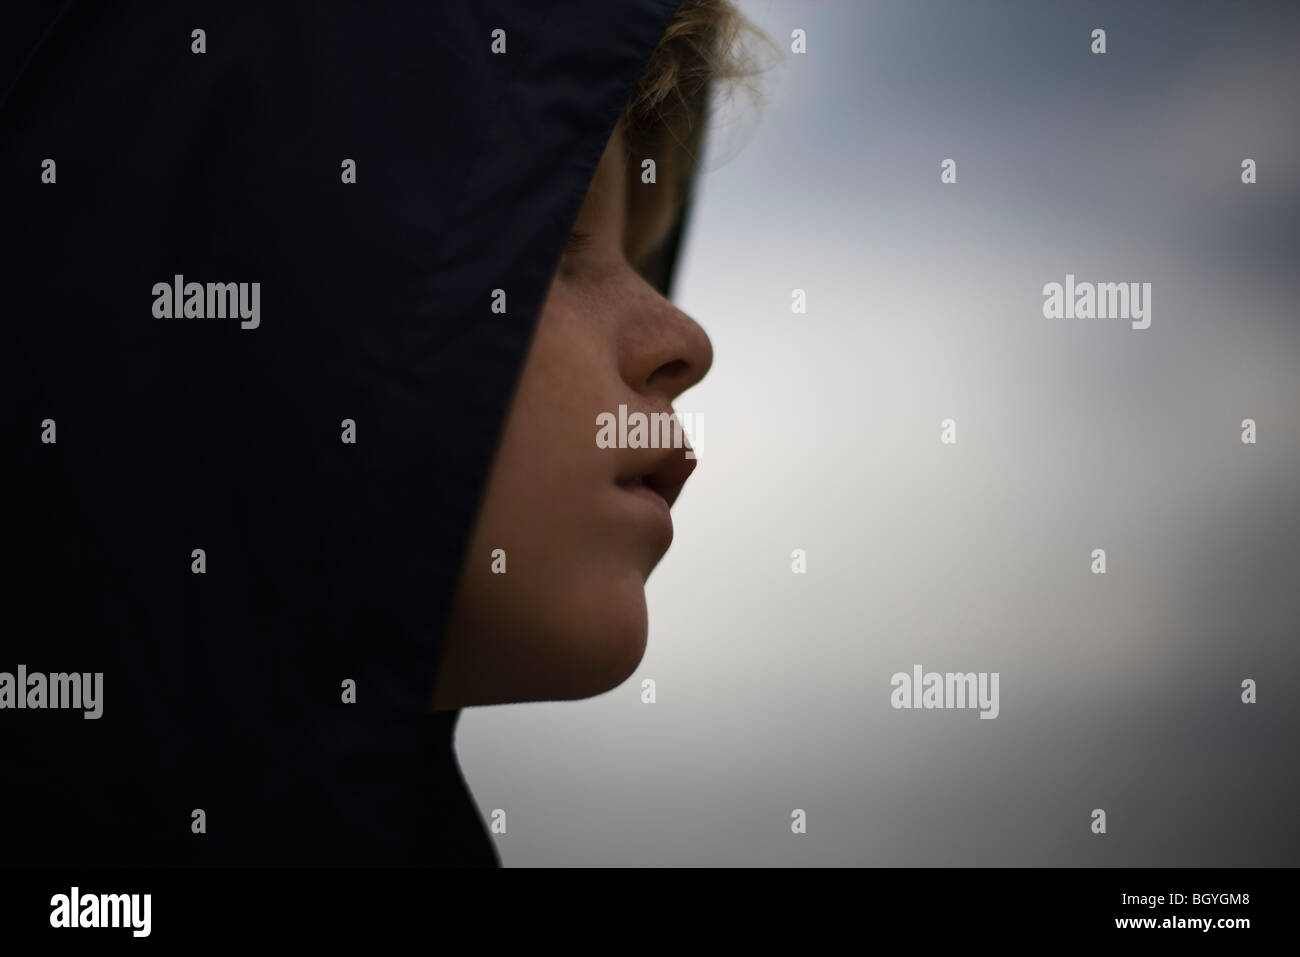 Boy looking away contemplatively - Stock Image